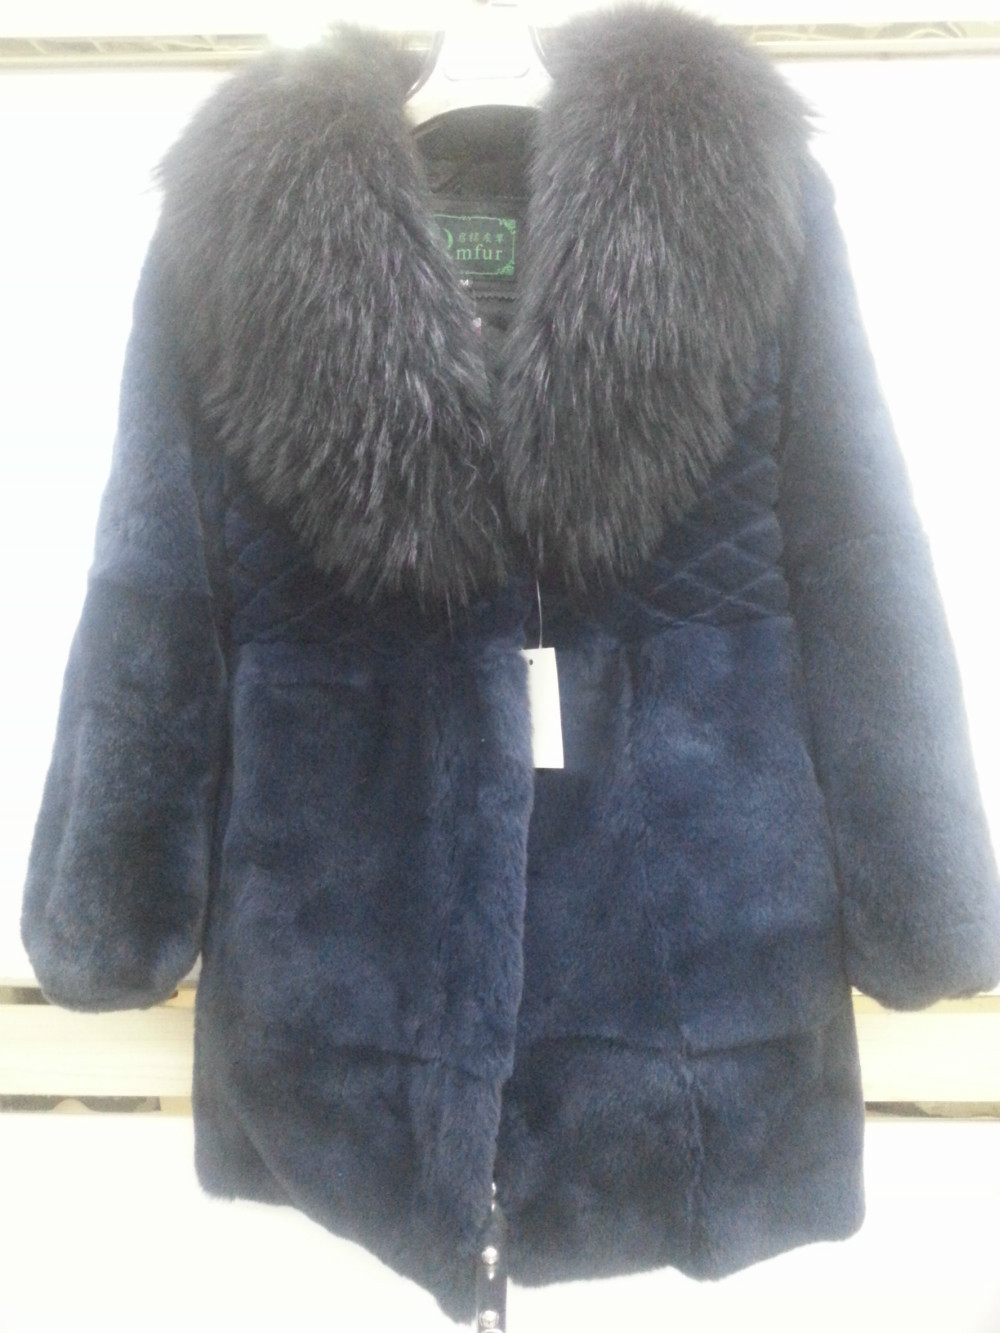 Compare Prices on Beaver Skin Coat- Online Shopping/Buy Low Price